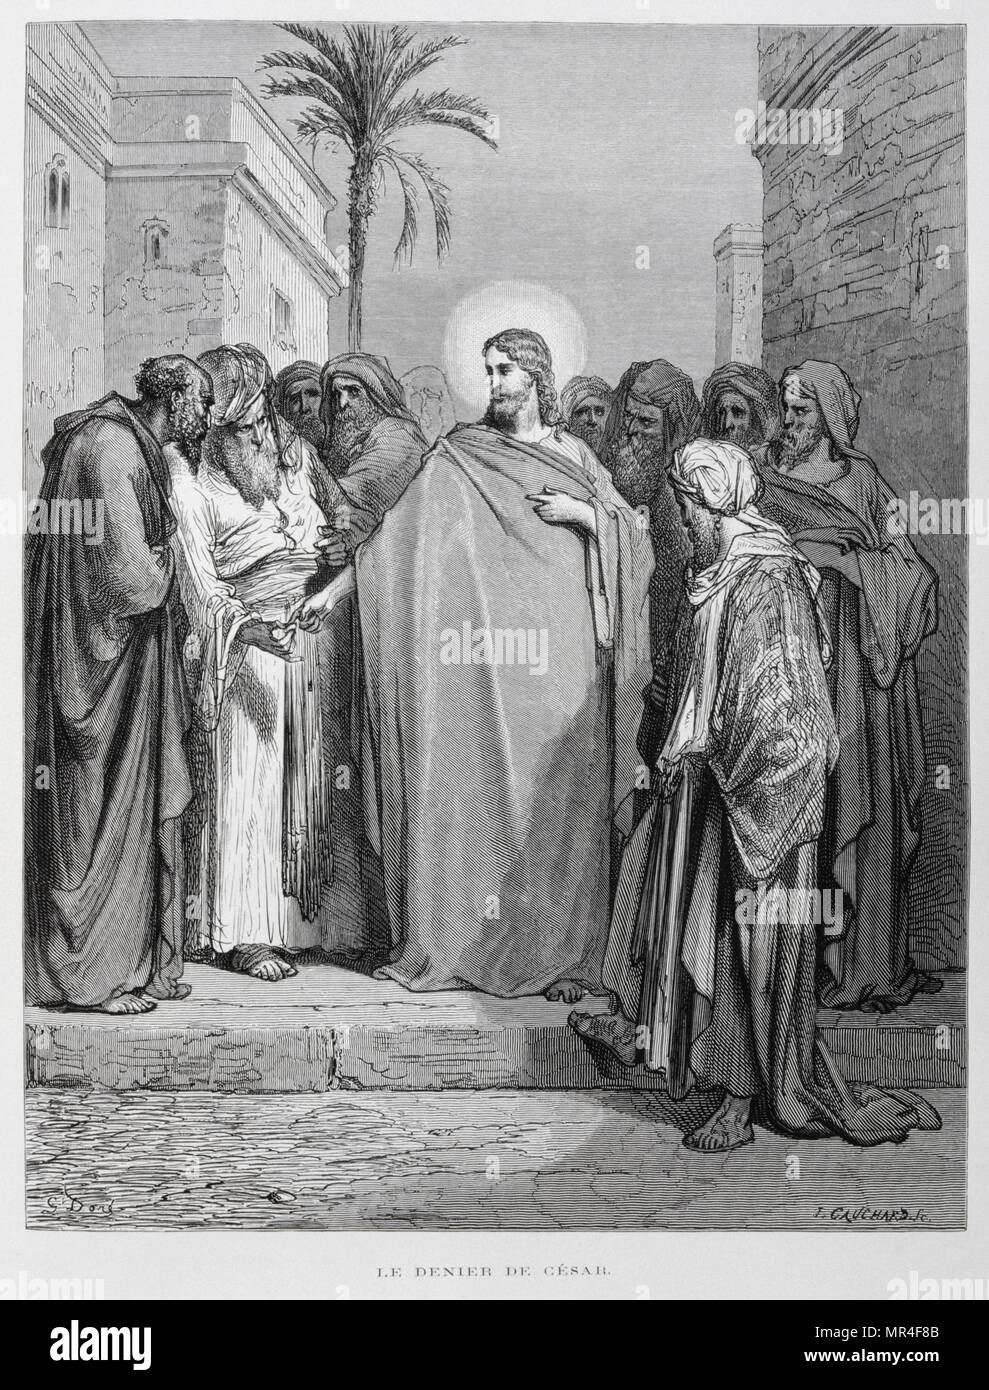 Matthew 22:15-22, Jesus Disputes with Pharisees about Tribute Money, Illustration from the Dore Bible 1866. In 1866, the French artist and illustrator Gustave Dore (1832–1883), published a series of 241 wood engravings for a new deluxe edition of the 1843 French translation of the Vulgate Bible, popularly known as the Bible de Tours. This new edition was known as La Grande Bible de Tours and its illustrations were immensely successful - Stock Image